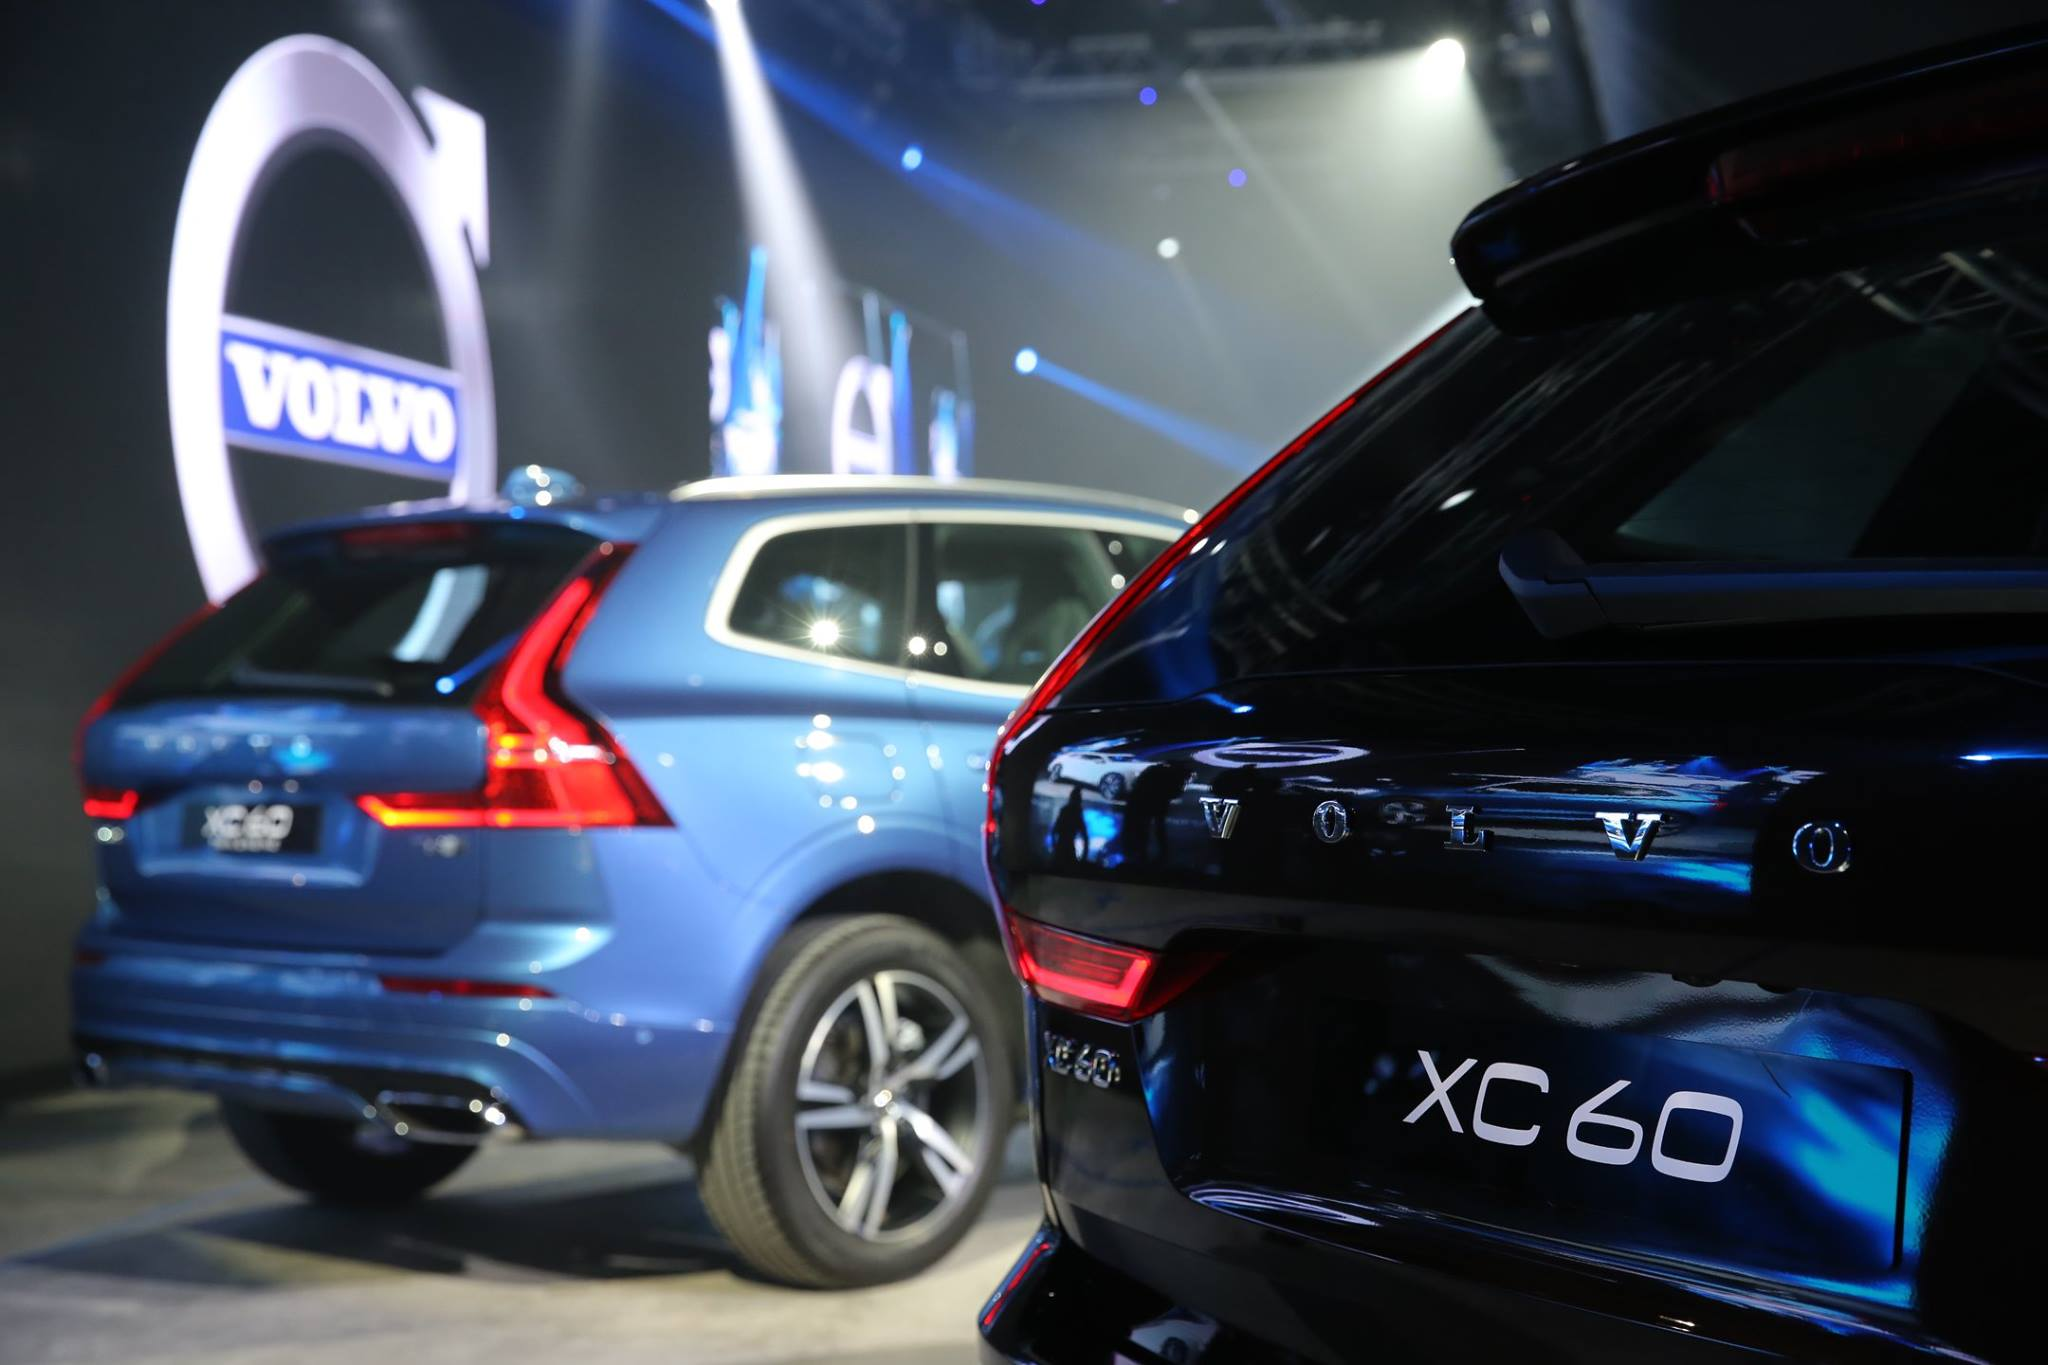 New Volvo XC60 launched in Thailand. from RM391k Volvo XC60 Thailand launch 3 - Paul Tan's Automotive News